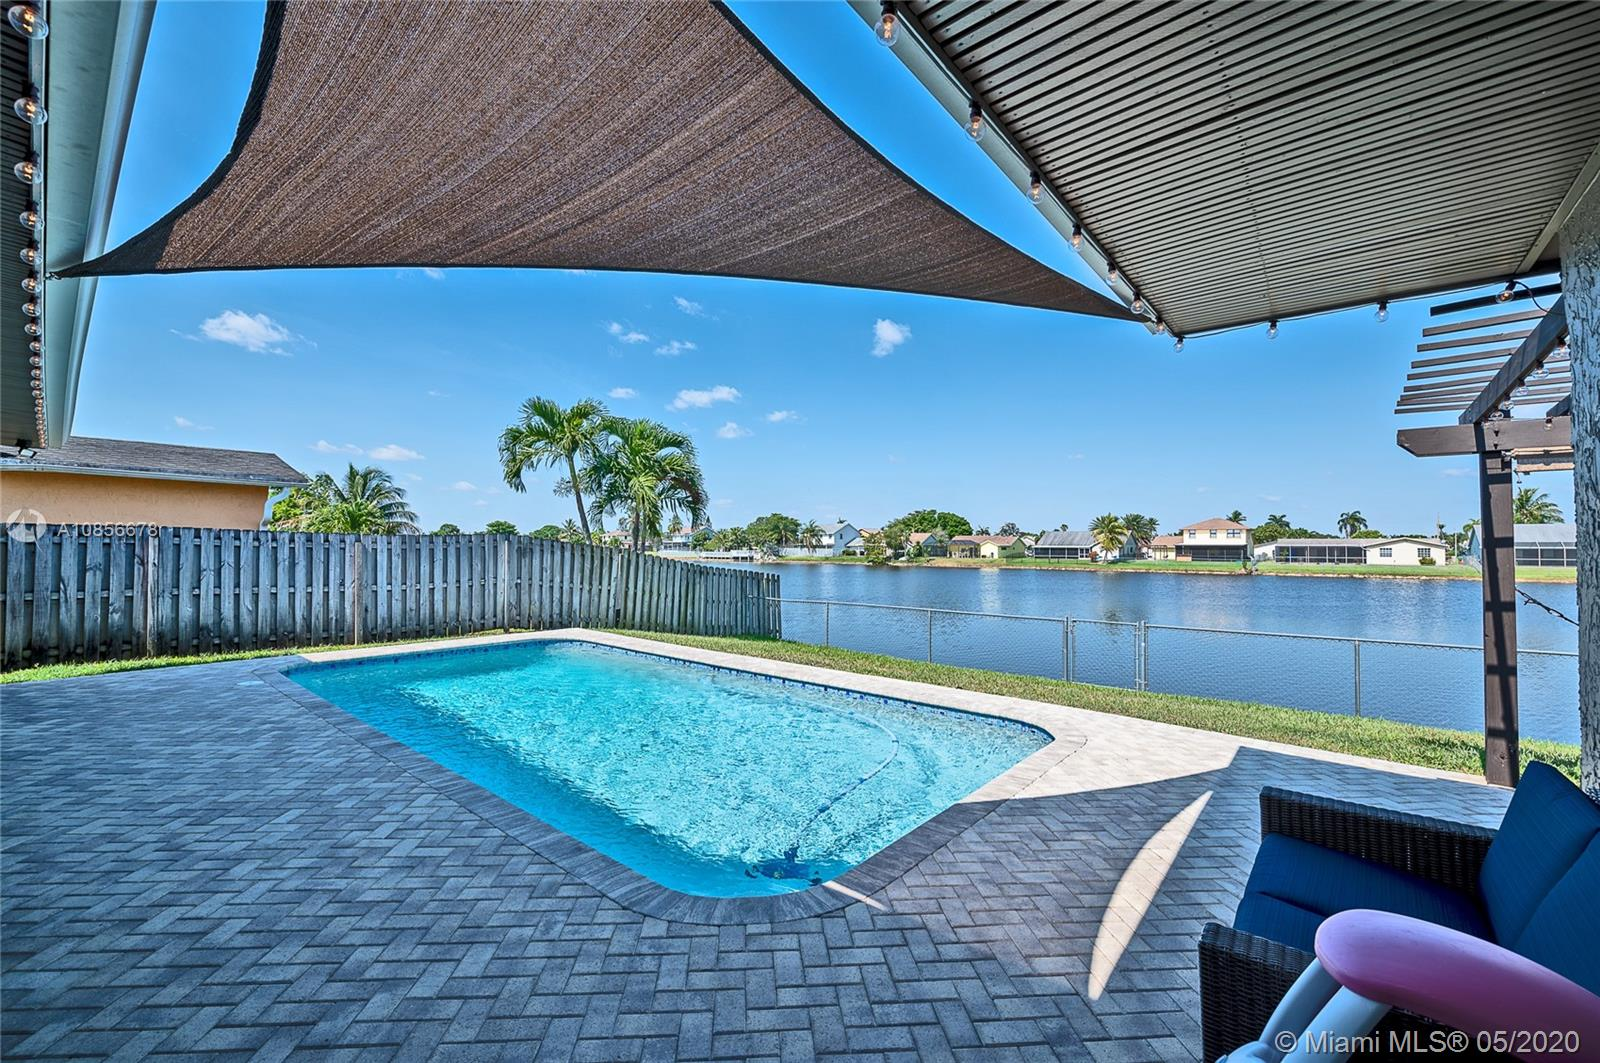 """No HOA! Everything you could possibly want in this lakefront w/pool Entertainers Delight! BRAND NEW ROOF in 2018! Fully fenced, refinished pool & paver patio with lighted Pergola for making the most of the South Florida Lifestyle. Welcome to your Dream Kitchen, featuring quartz counters*tile backsplash*under counter lighting*42"""" cabinets with soft close drawers*SS appliances & gas stove for cooking. The eat-in kitchen & family room open to the pool patio. The appealing split bedroom plan with updated baths is perfect for everyone. One of the most beautiful streets in Sunrise, lined in Royal Palm trees, are sure to delight upon arrival to your home. Outstanding location, within minutes to Sawgrass Mills Mall, easy I75 access to points, north, south and east. Not to be missed!!"""